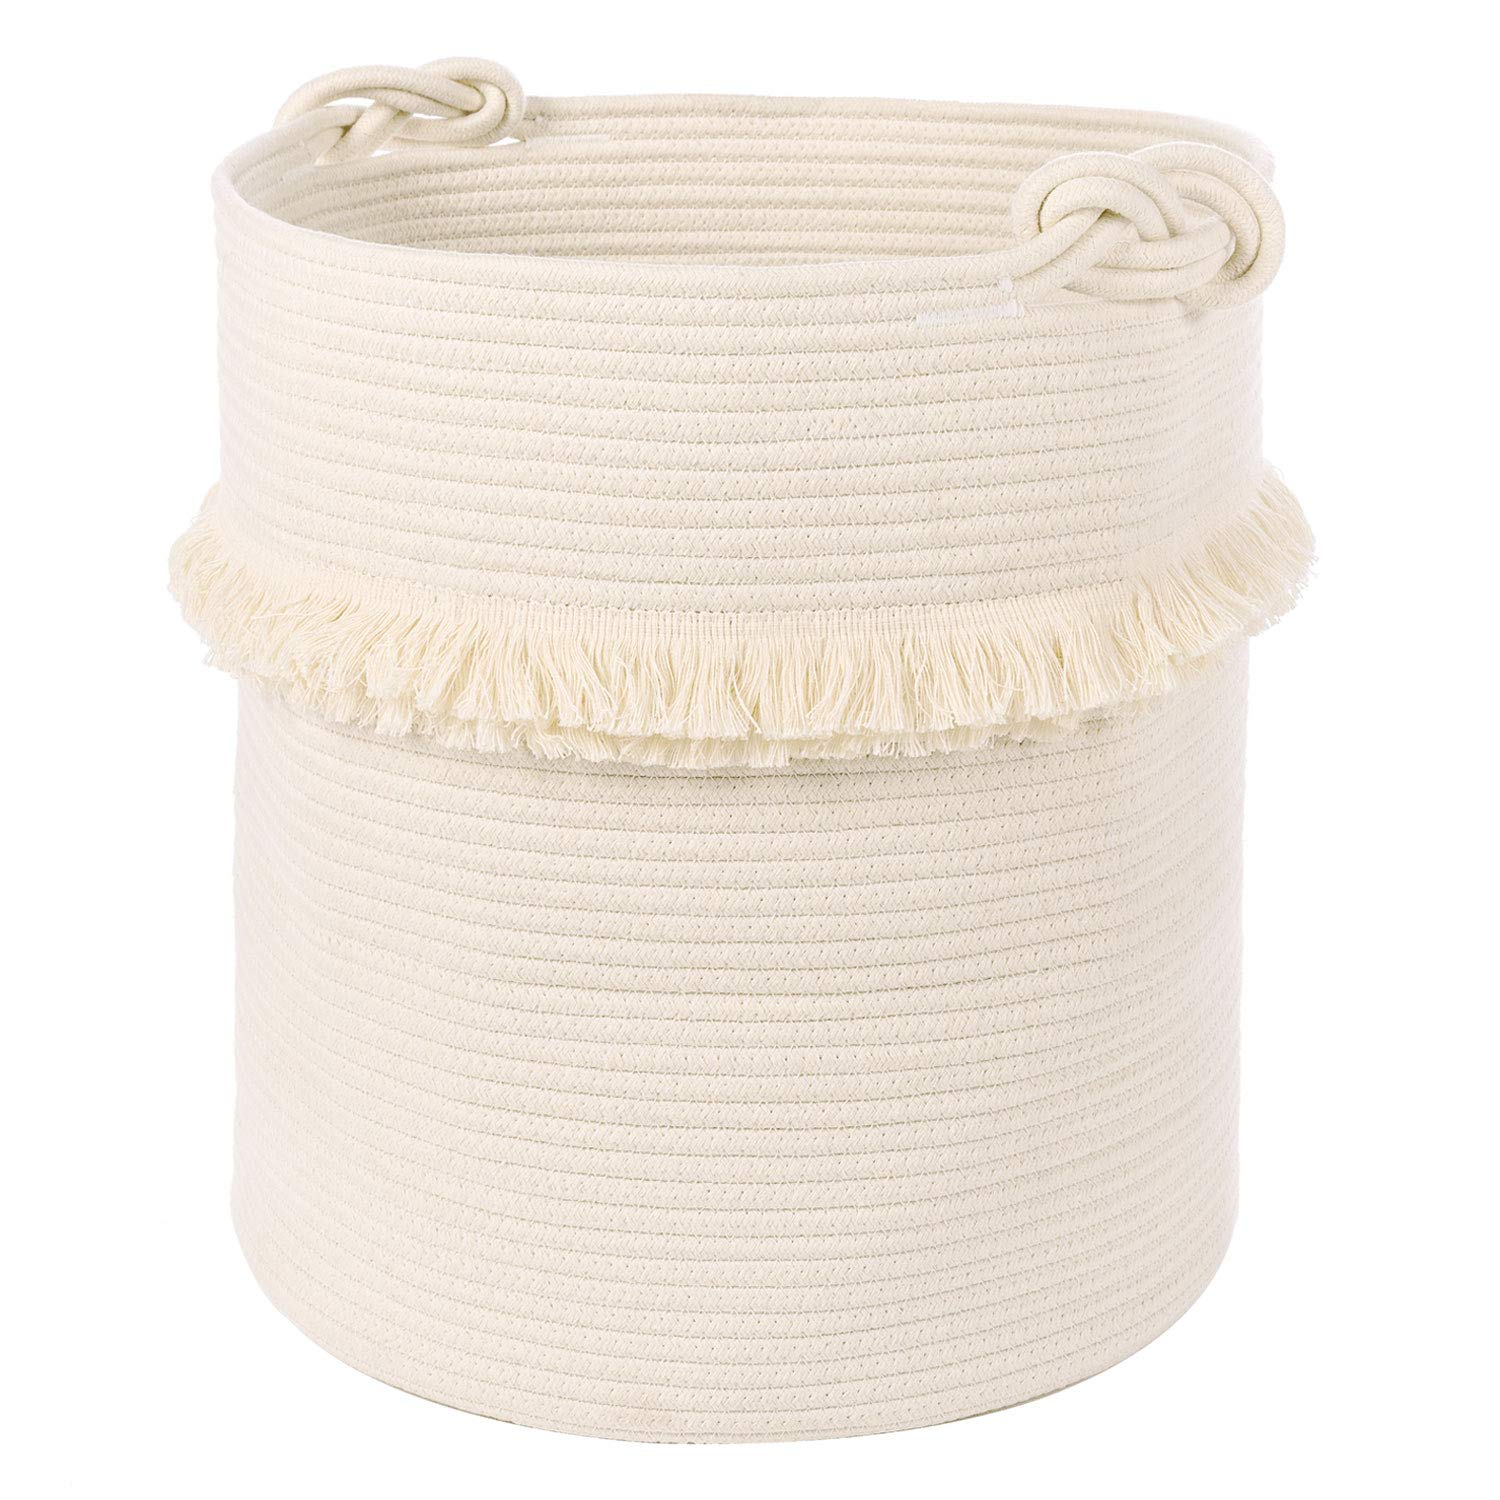 Extra Large Woven Storage Baskets - 17'' x 16'' Cotton Rope Decorative Hamper for Magazine, Toys, Blankets, and Laundry, Cute Tassel Nursery Decor - Home Storage Container by CherryNow